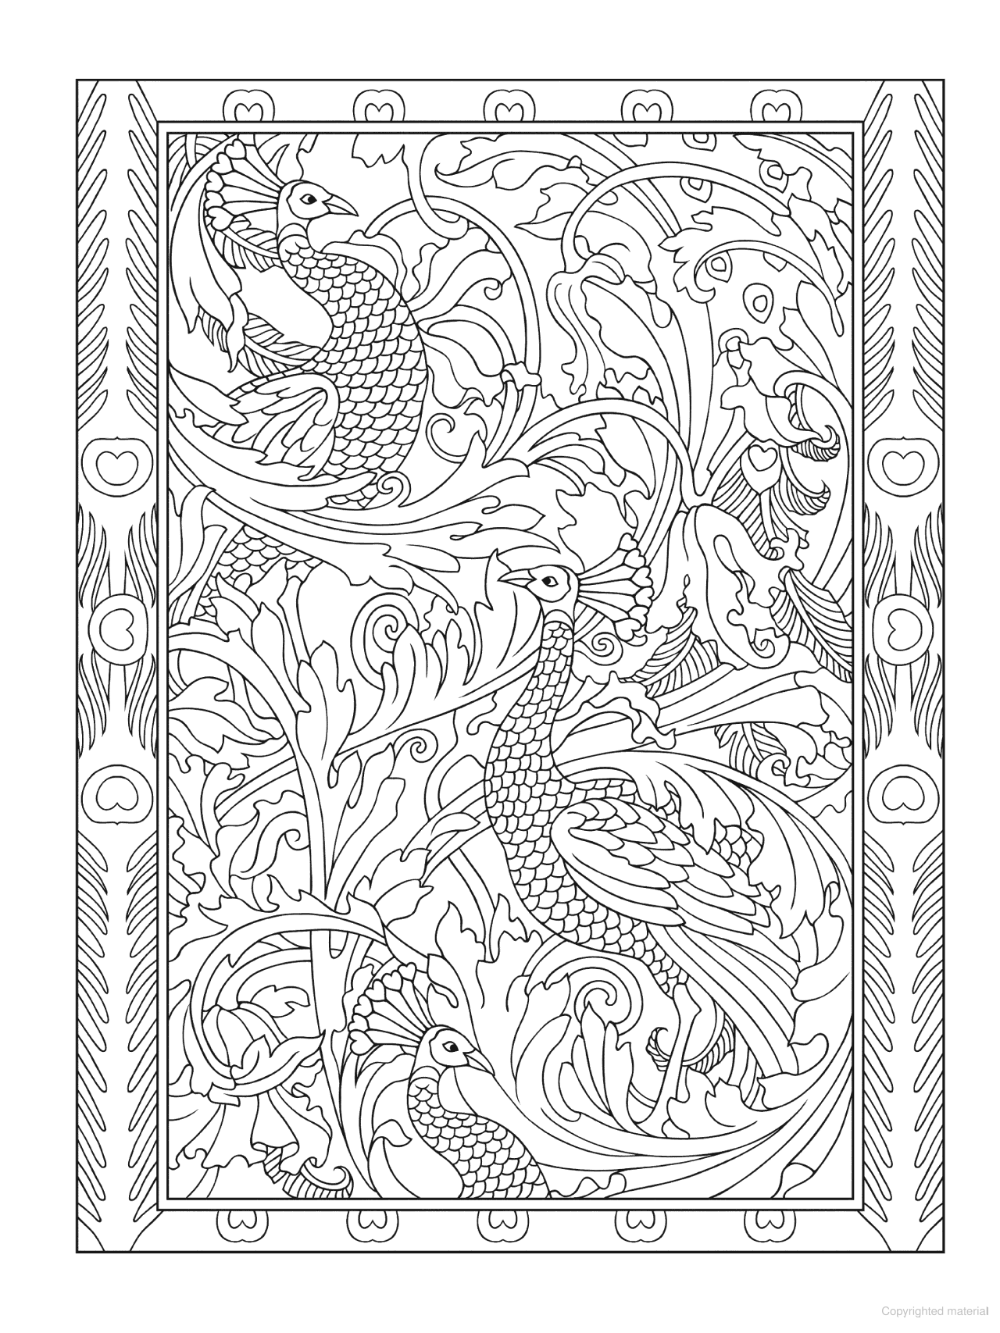 Creative Haven Peacock Designs Coloring Book Designs Coloring Books Persian Art Painting Detailed Coloring Pages